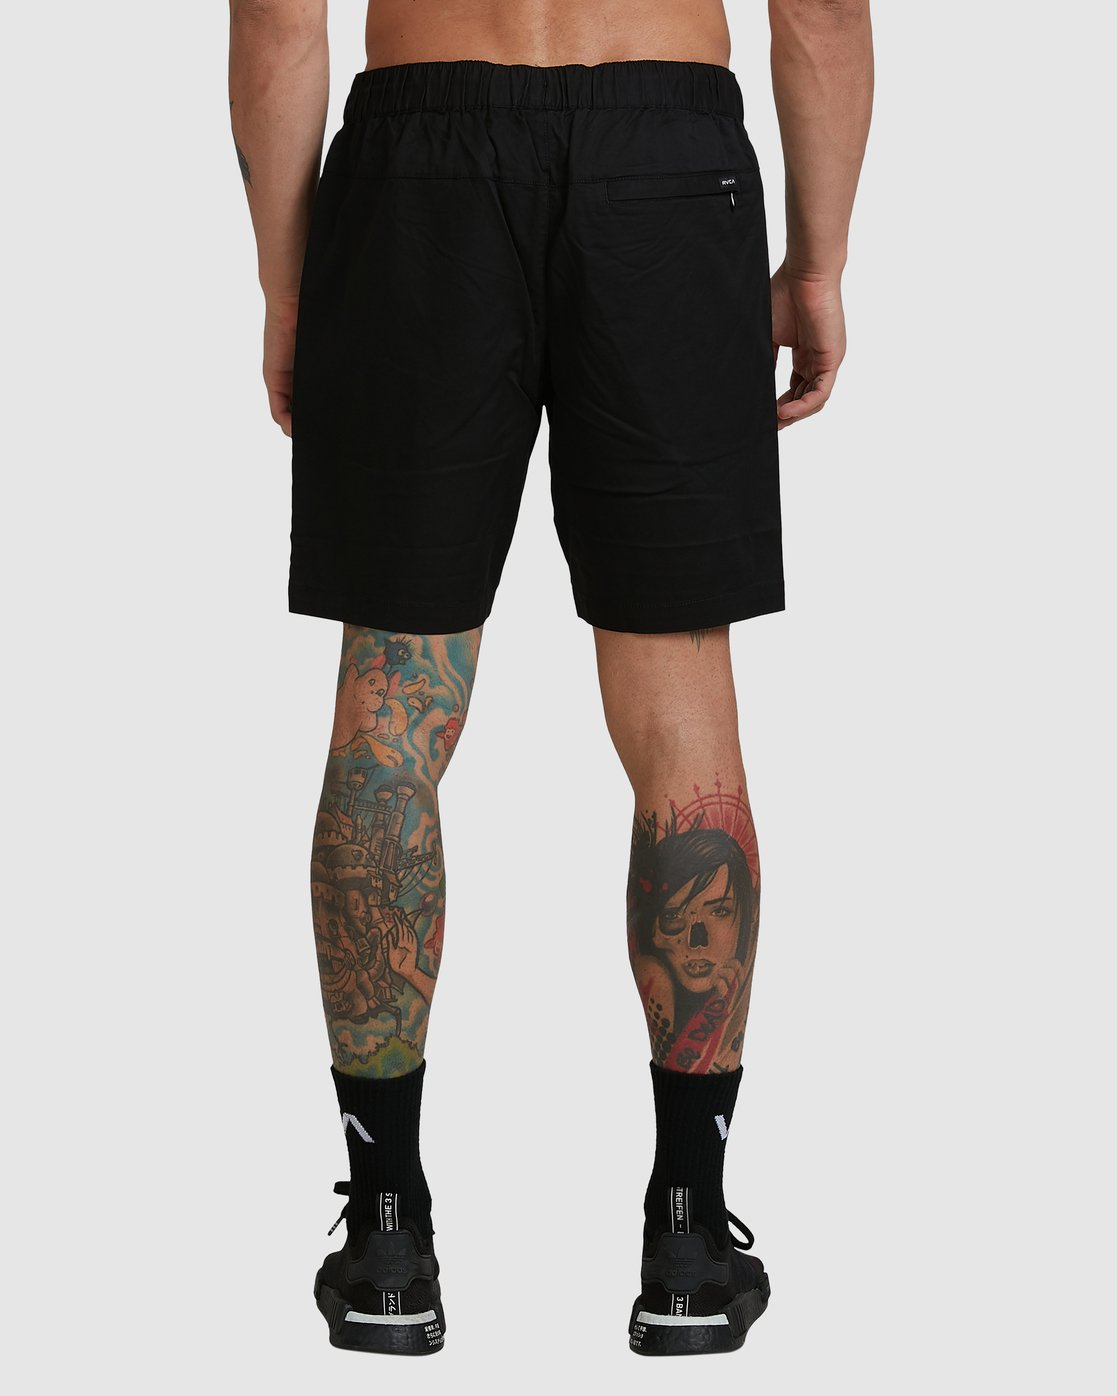 3 SPECTRUM SHORTS Black R107311 RVCA